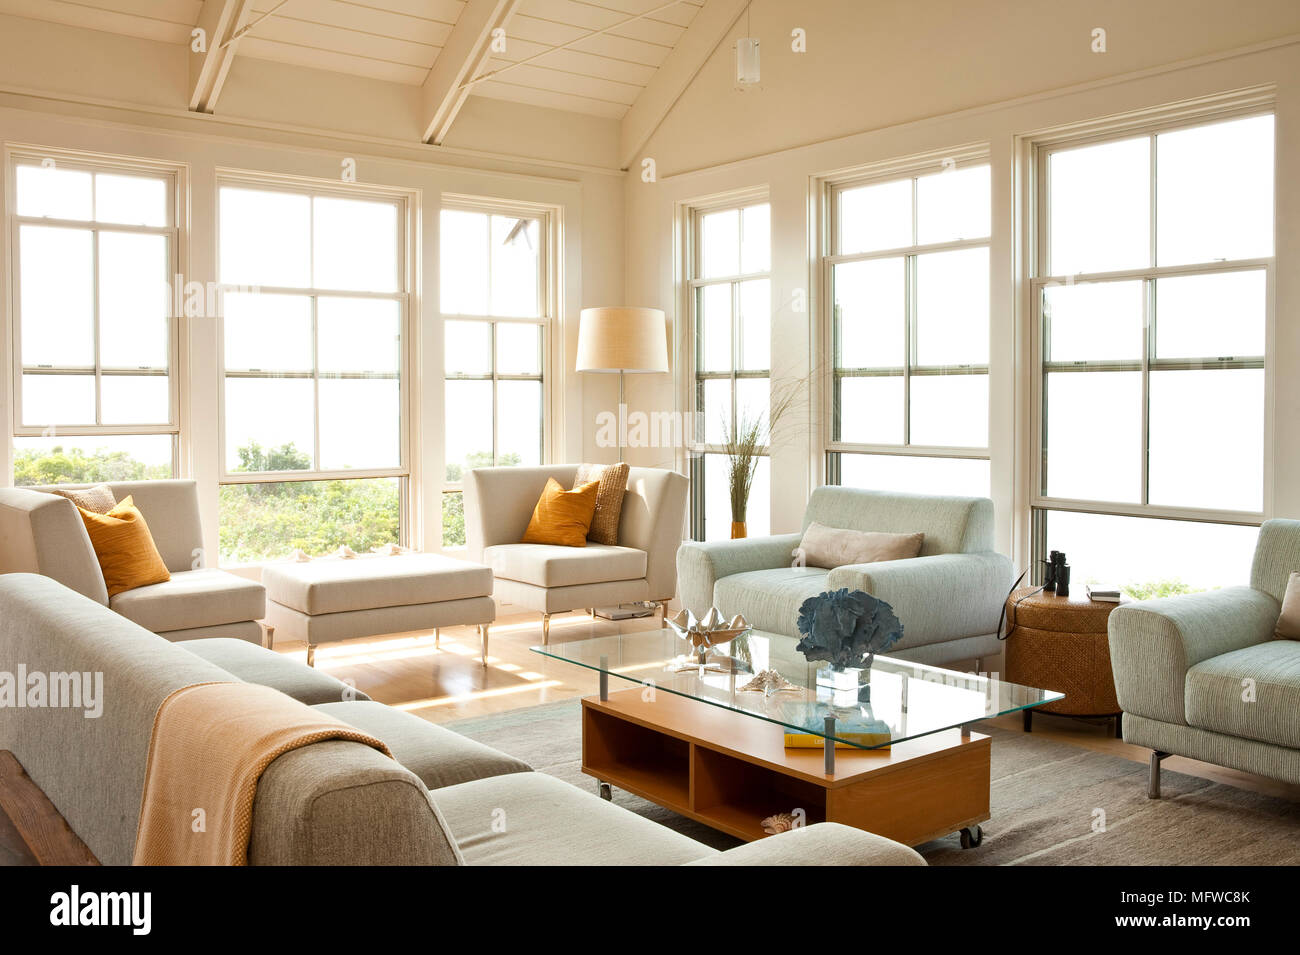 Country Style Sitting Room Sofa Coffee Table Stock Photos & Country ...